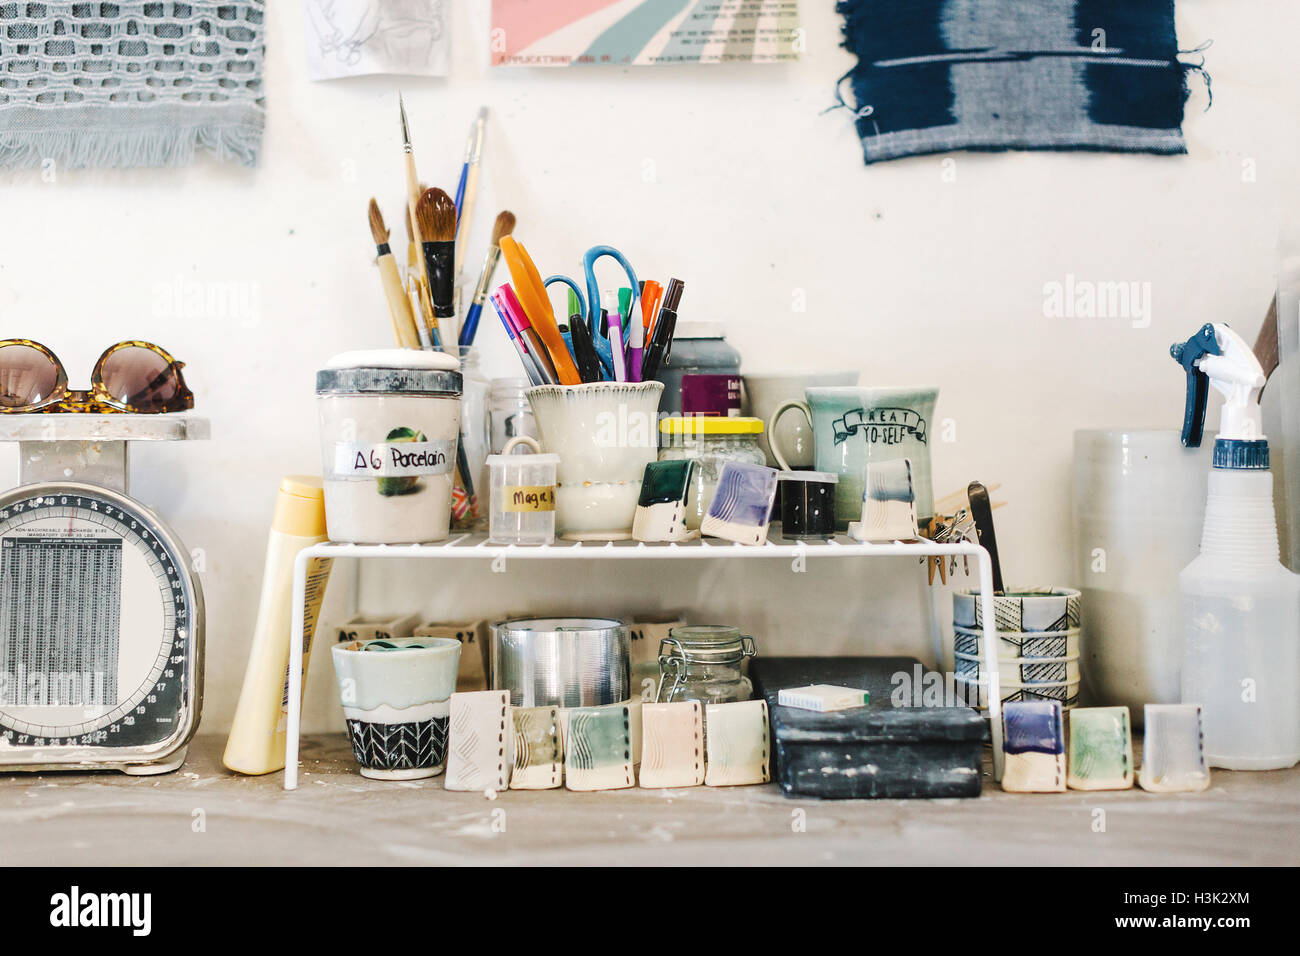 Assortment of art materials and tools in pottery studio - Stock Image